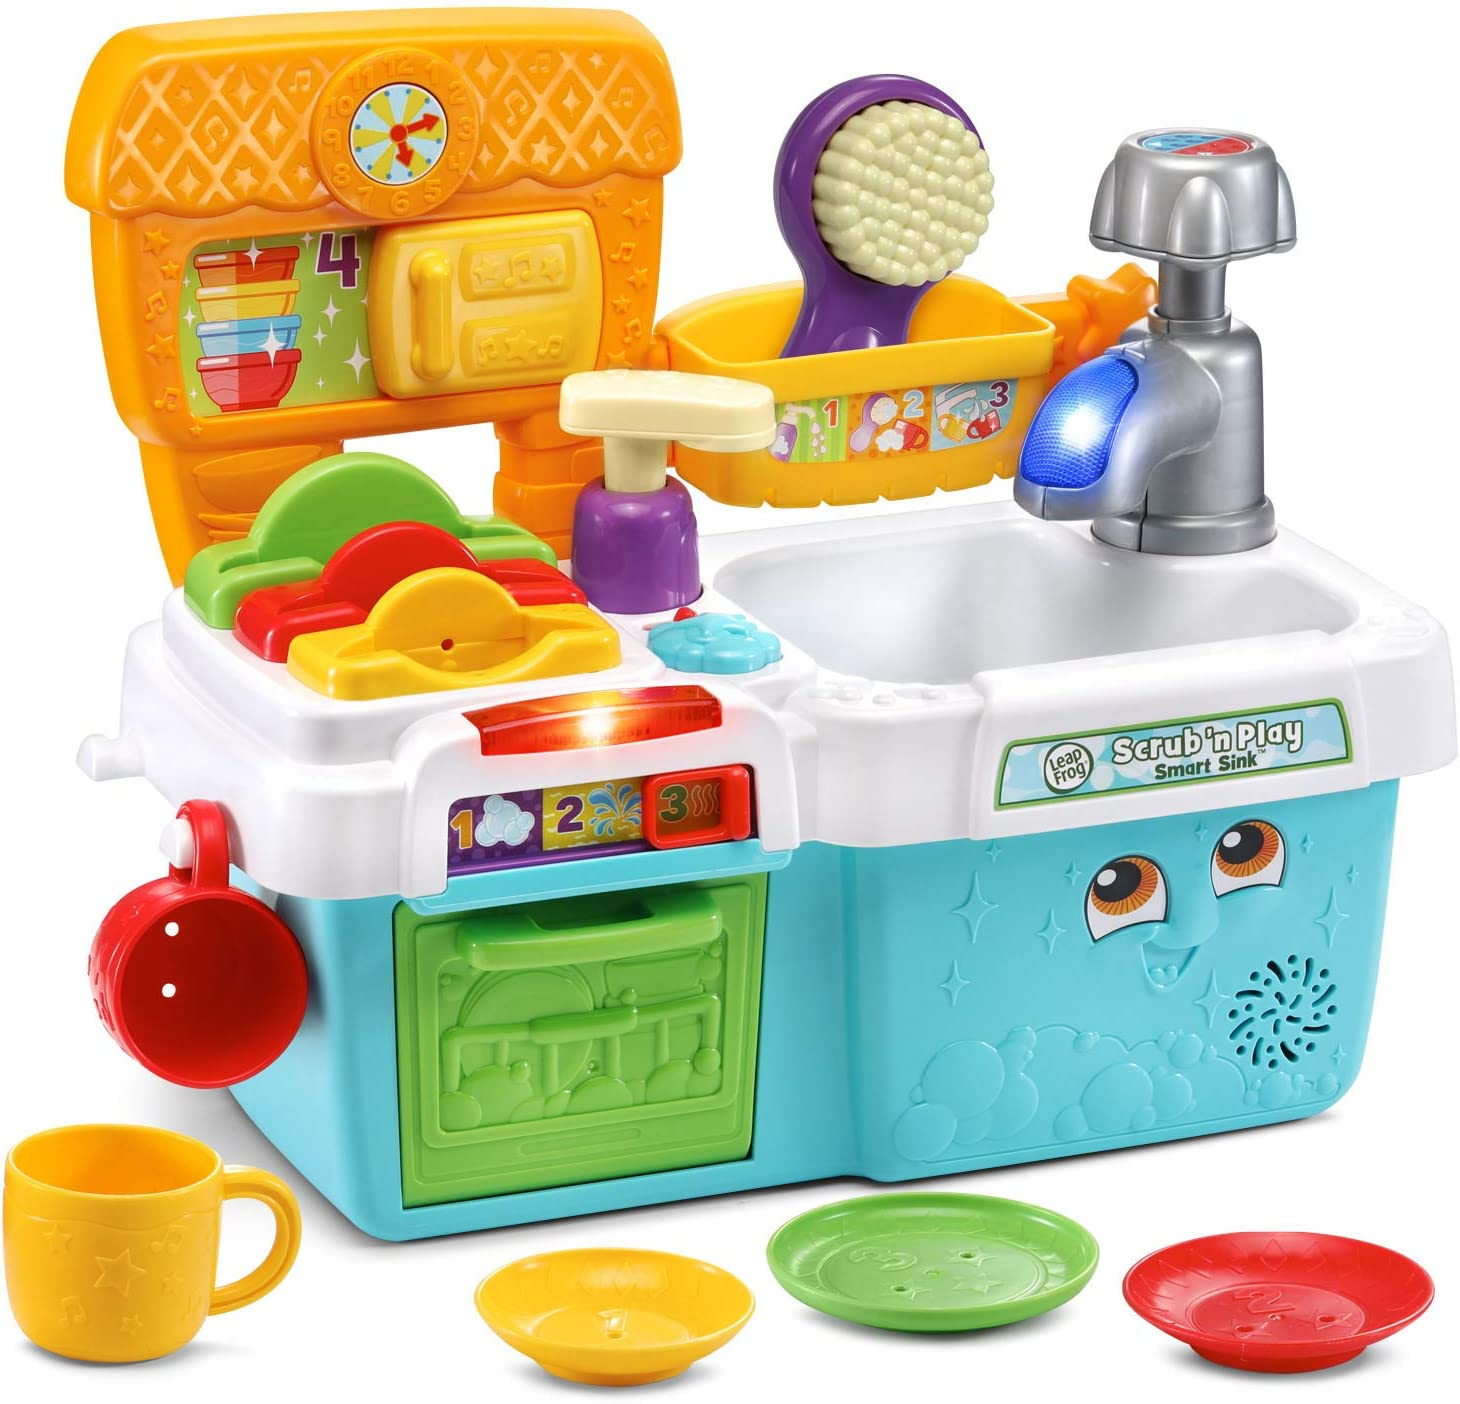 LeapFrog Scrub 'n Play Smart Sink: Soak up fun and learning with the Scrub 'n Play Smart Sink™. Pretend to wash the dishes in the sink and count from one to ten by adding the pretend soap. Learn about colors and sizes when matching the plates to their slots in the drying rack. Load up the dishwasher and choose the cycle. One, two, three! Hear fun responses when opening and closing the door. Practice following directions by pressing the star activity button to get some clean-up suggestions. Wash the green plate! Water sounds make clean-up time feel real. Everything stores neatly when playtime is done. This toy contains electronics and is not a water toy.